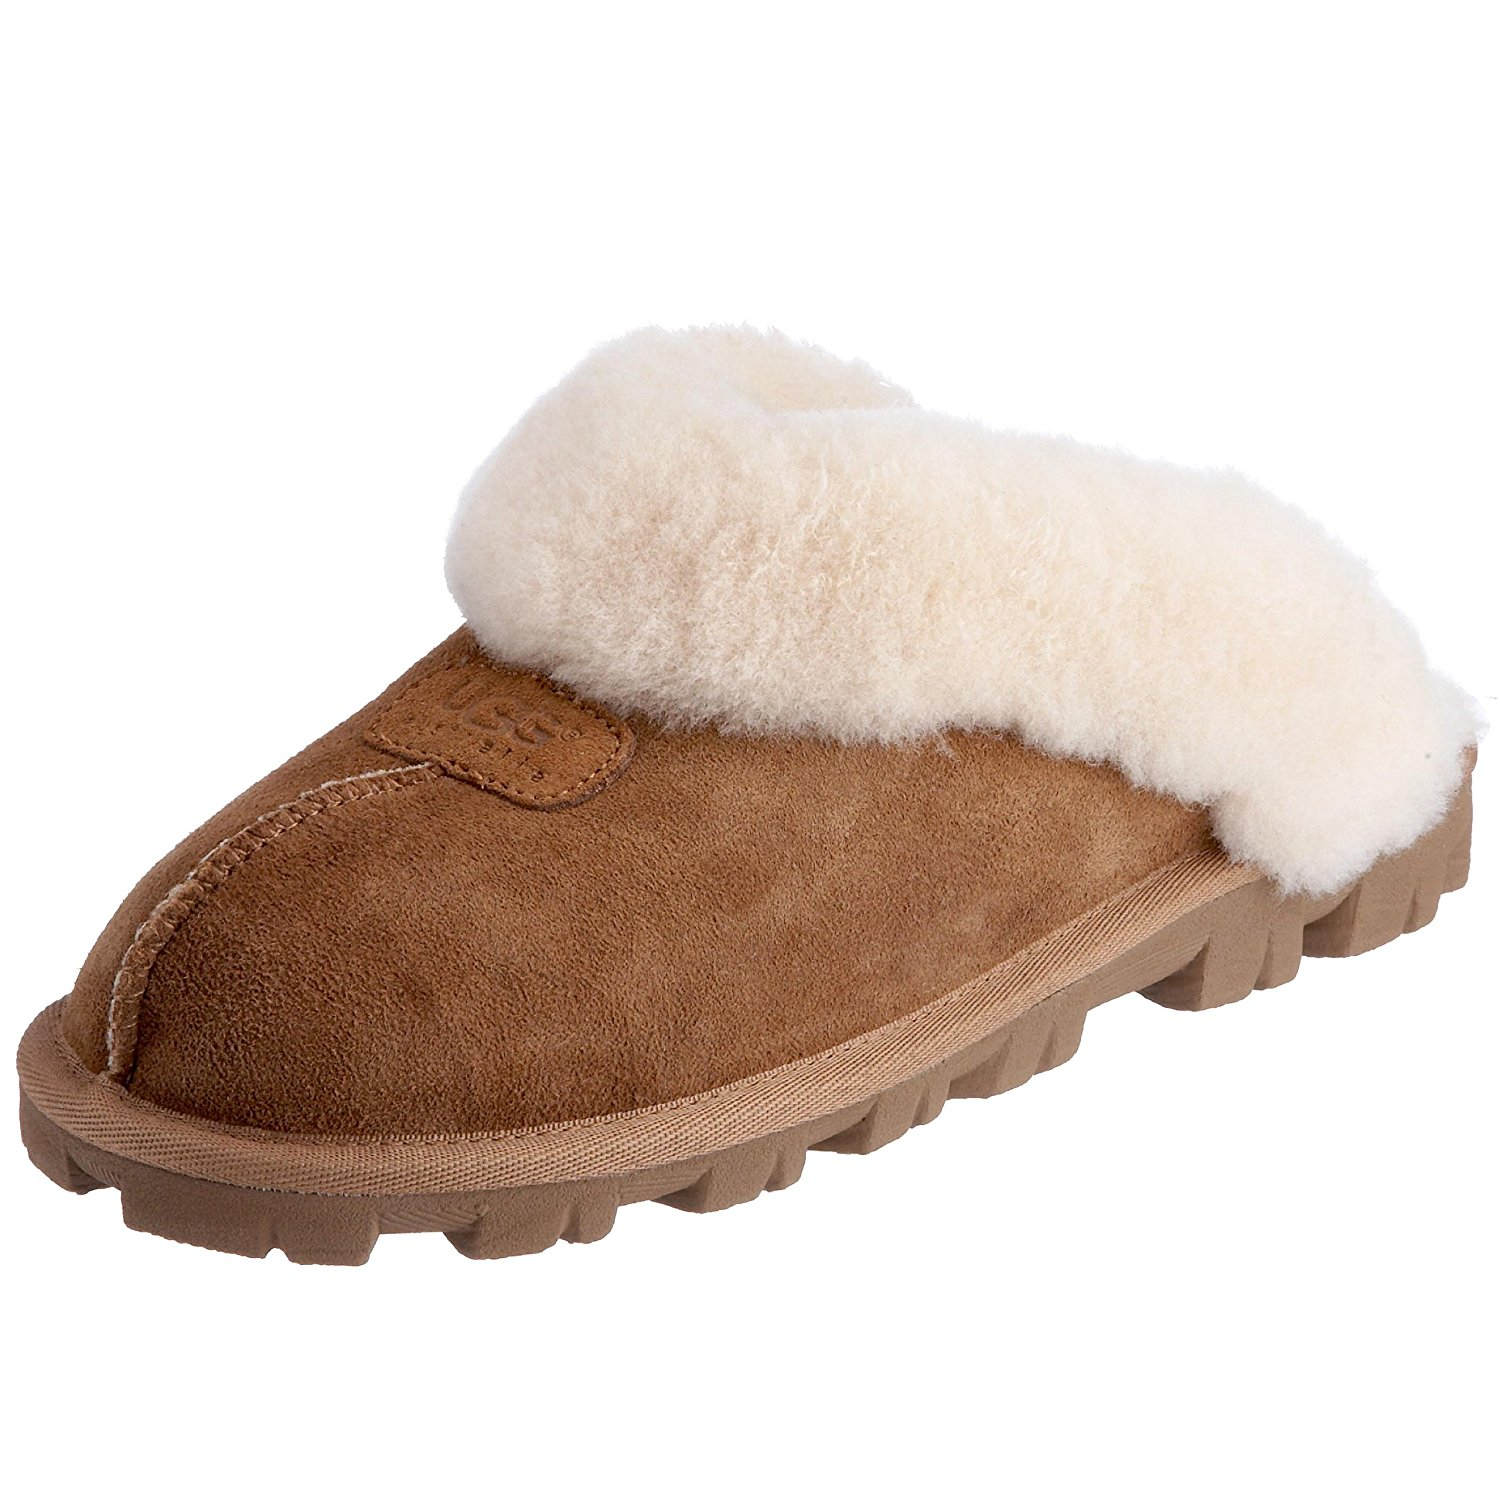 79cb887b096 Cheap Ugg Coquette Sale, find Ugg Coquette Sale deals on line at ...